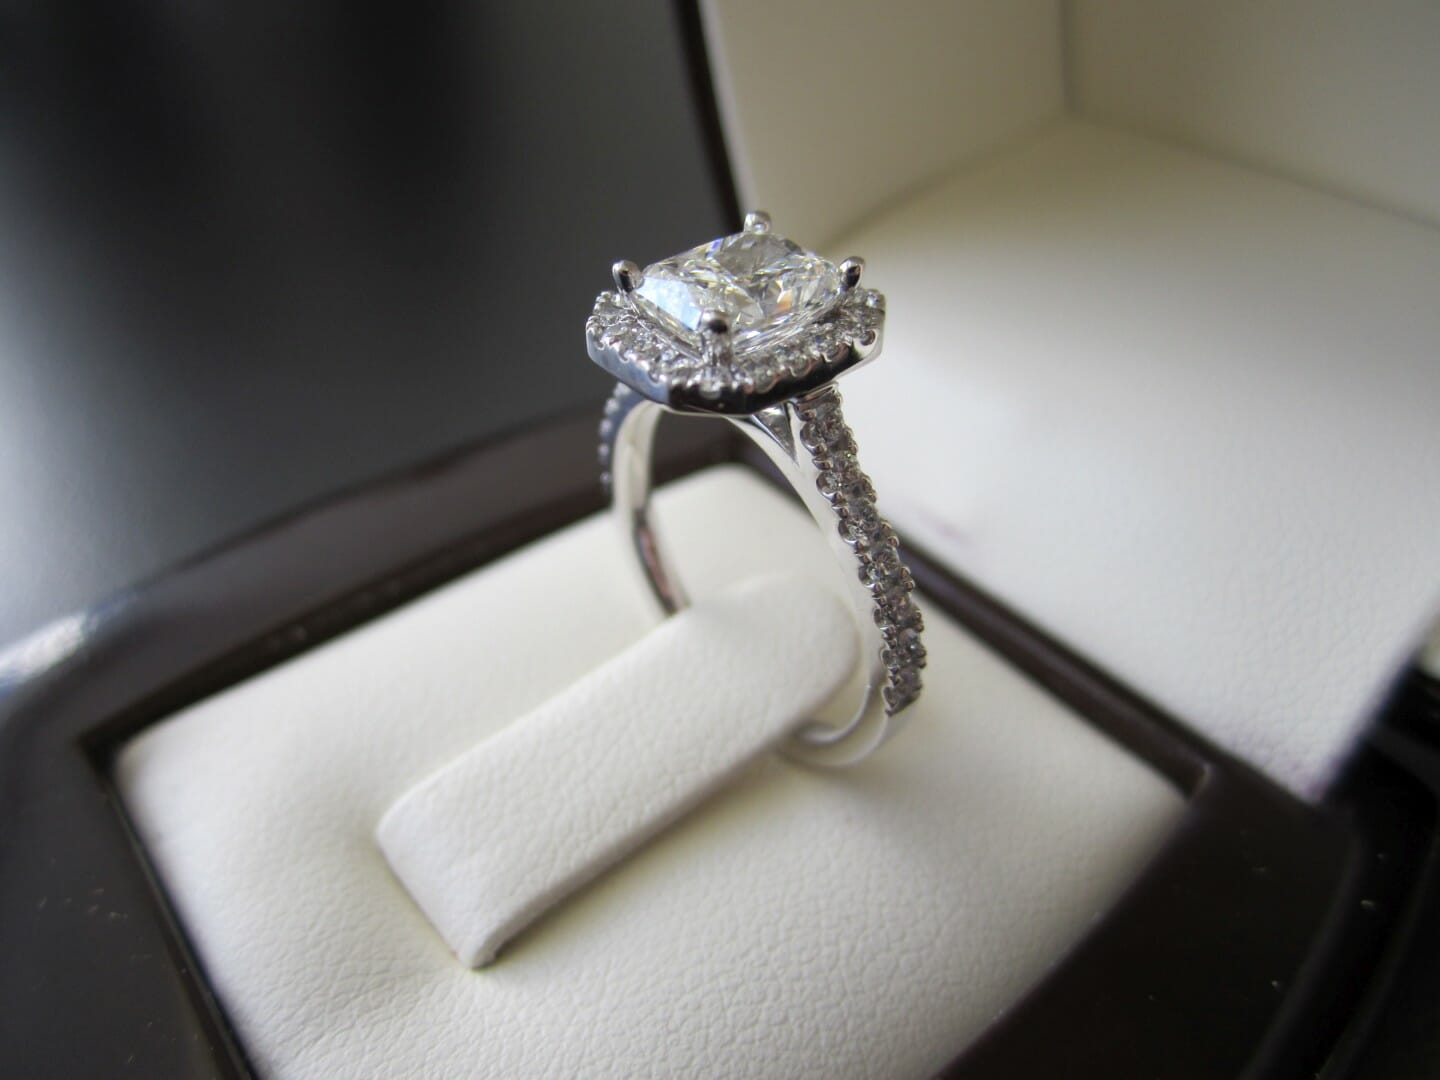 Picture of 1.25ct Radiant Diamond in a Micro Pave Halo Engagement Ring